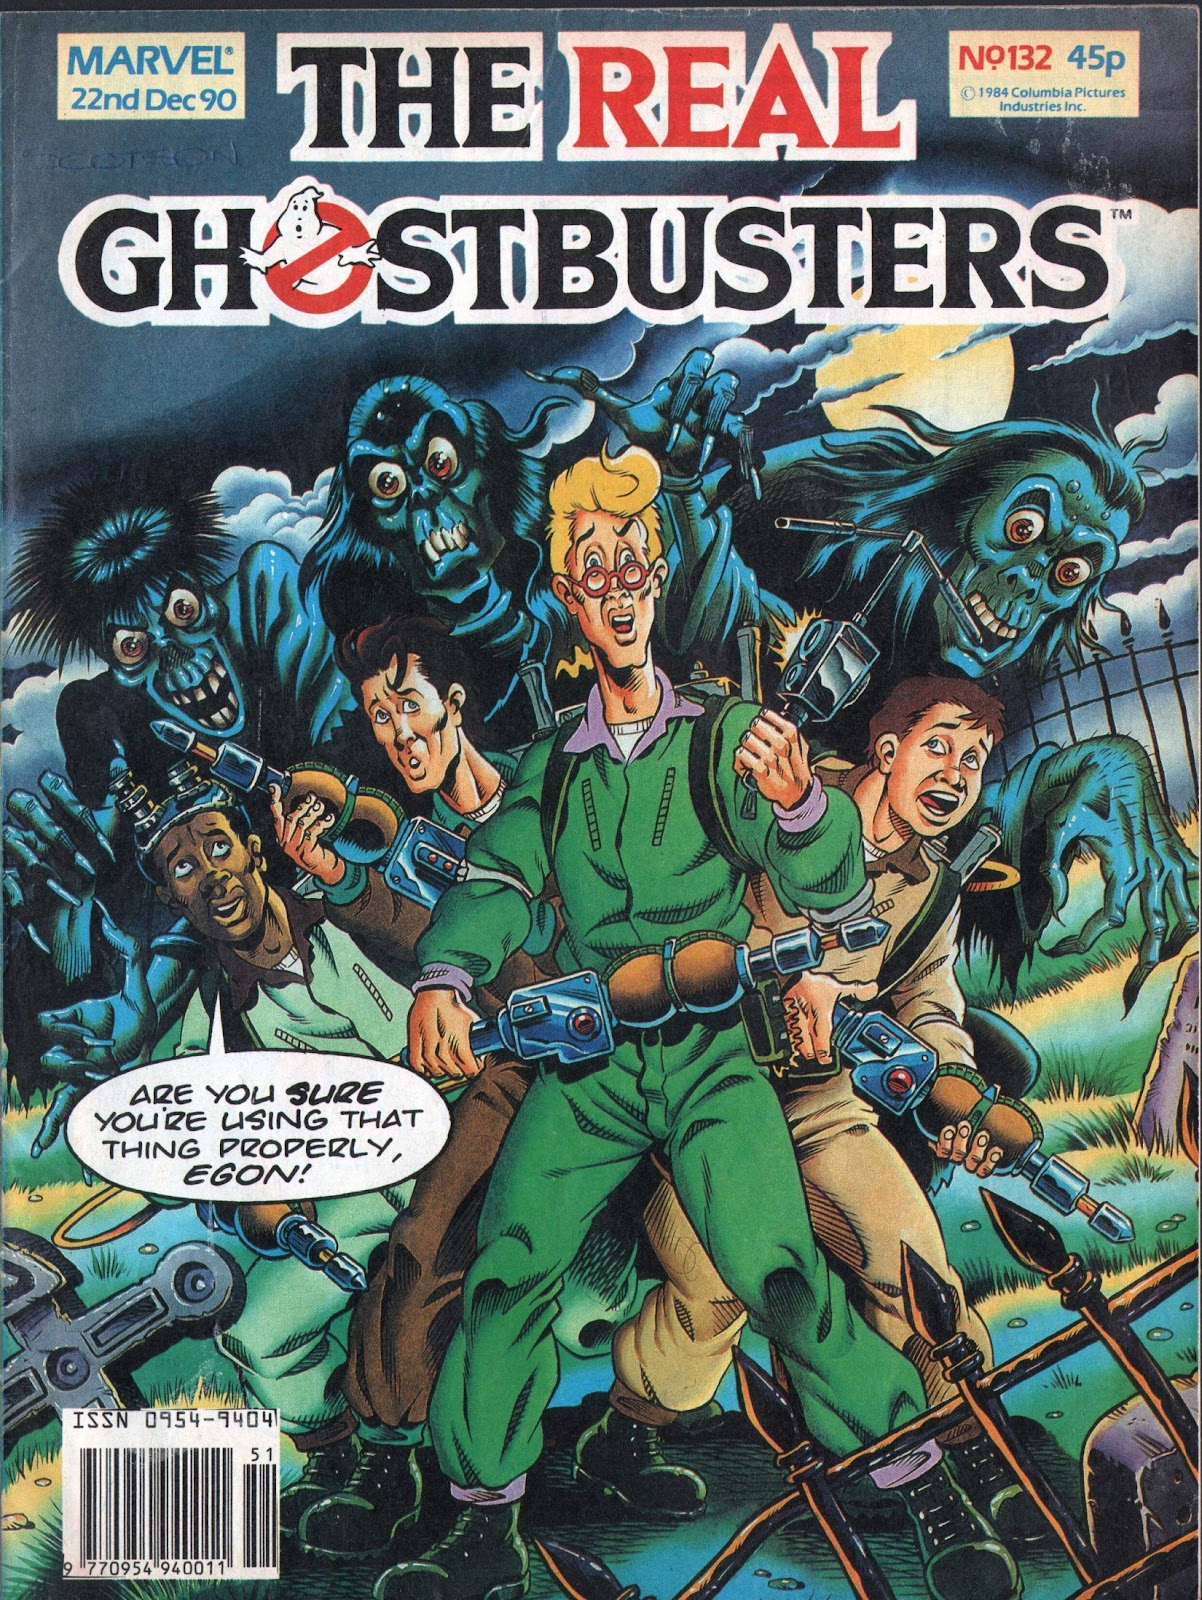 The Real Ghostbusters 132 Page 1